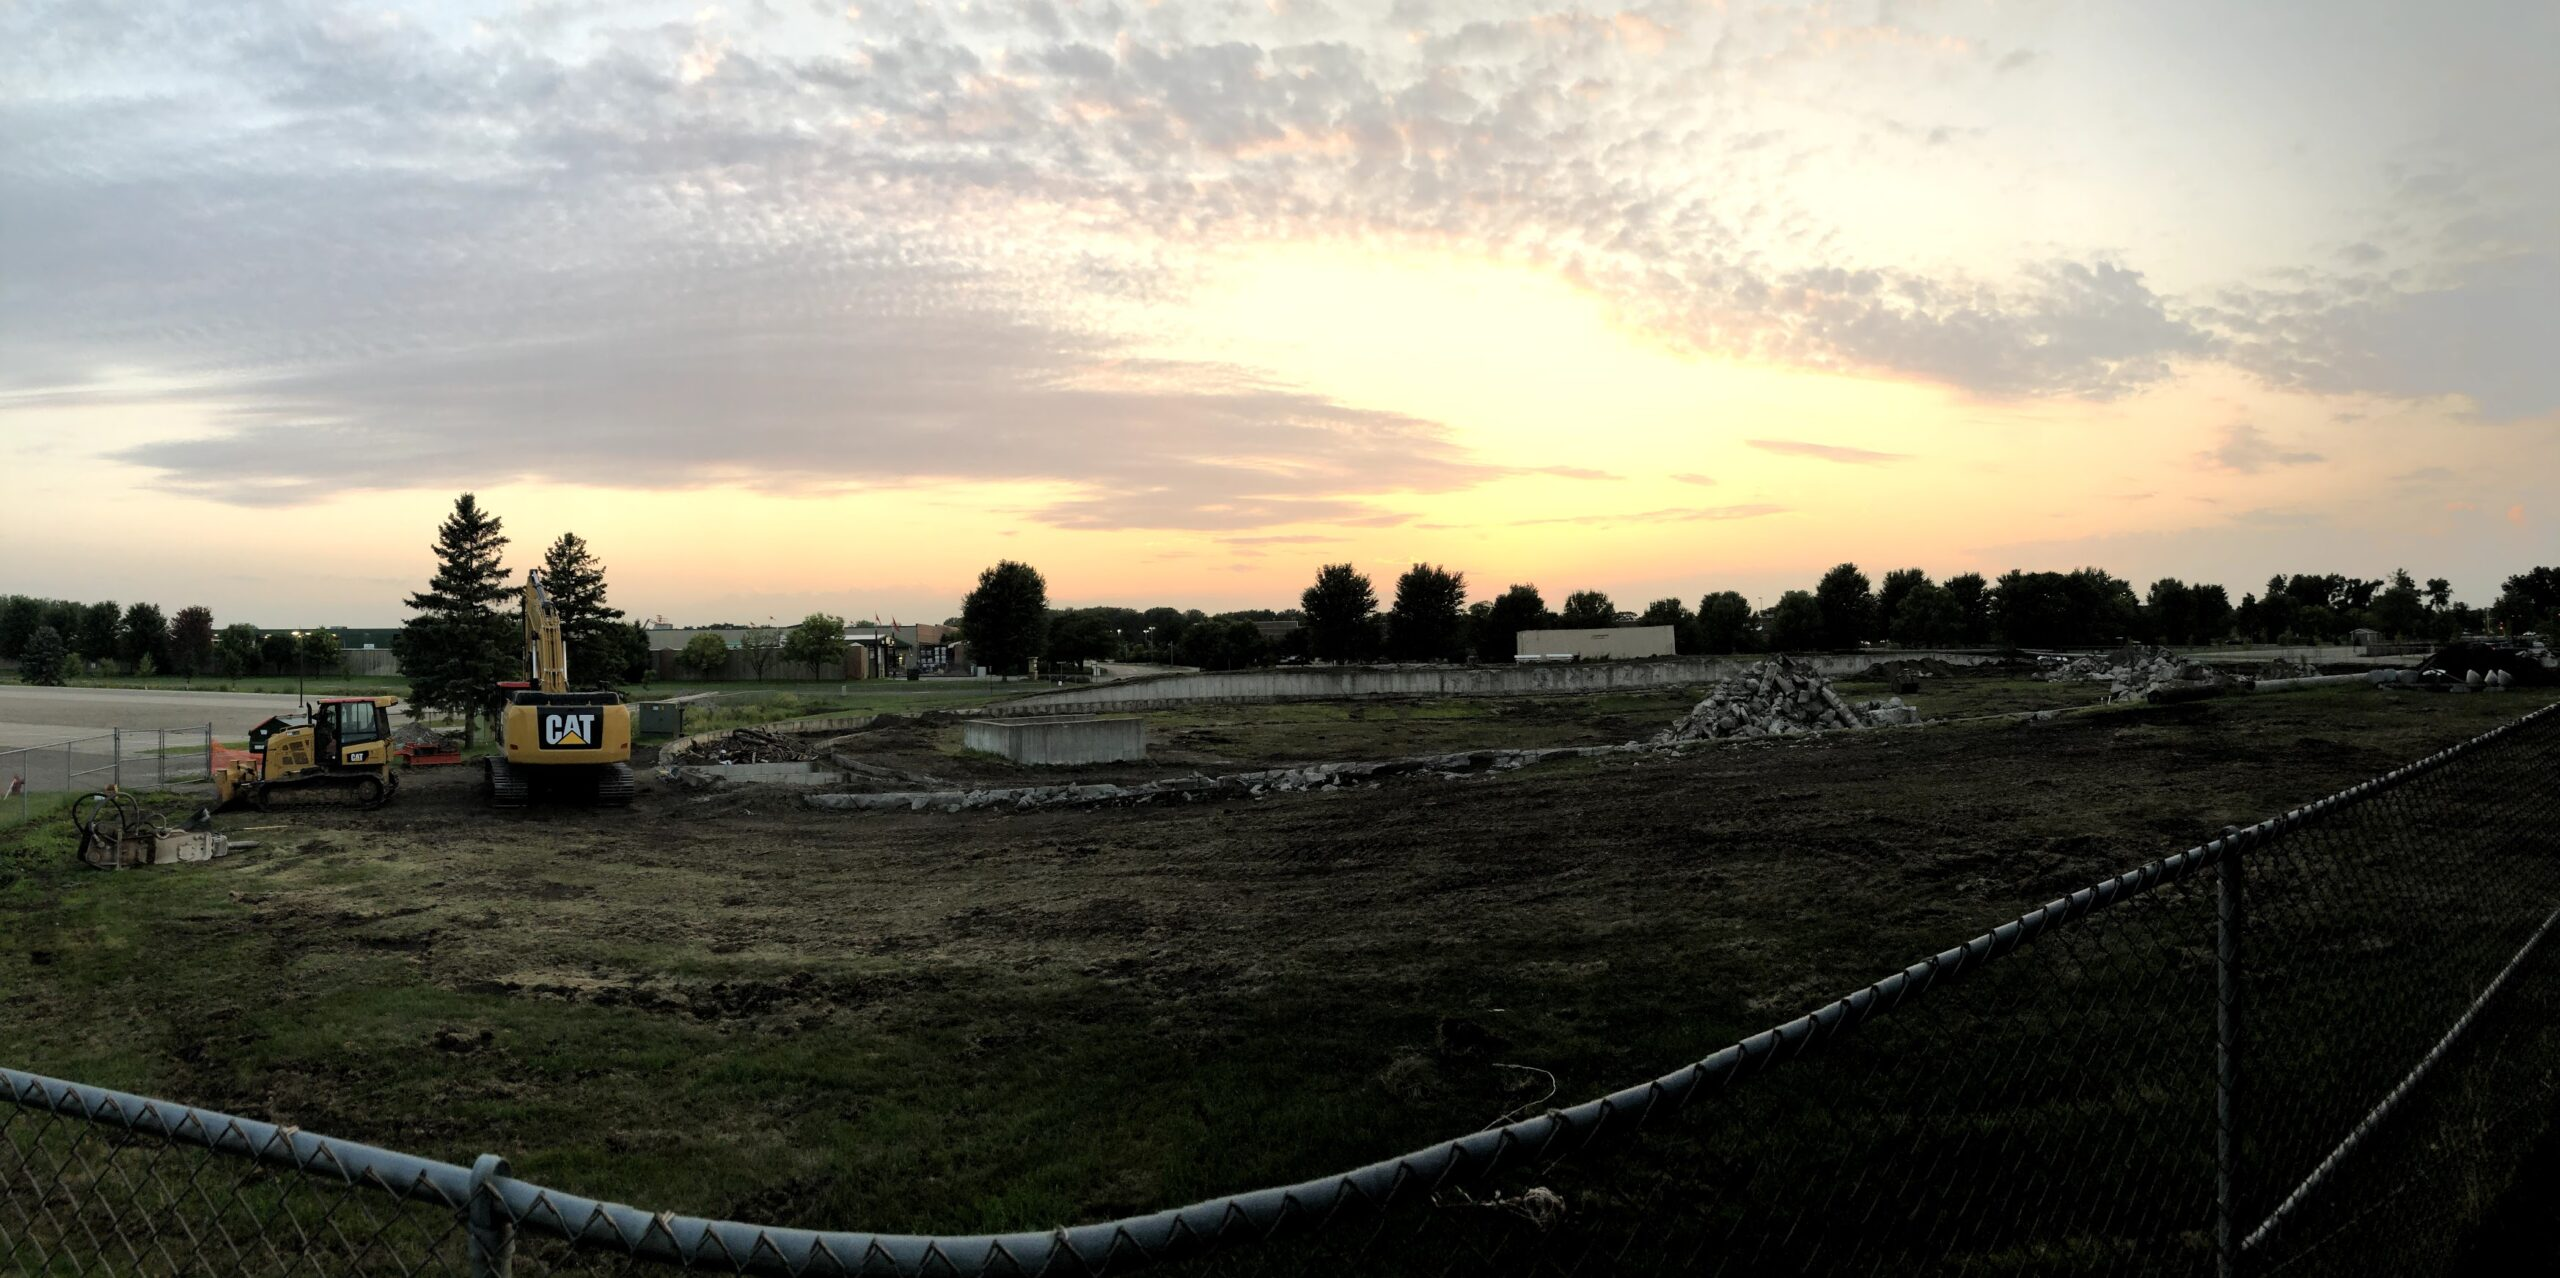 Construction to dismantle the Velodrome began on the east side of the National Sports Center campus.